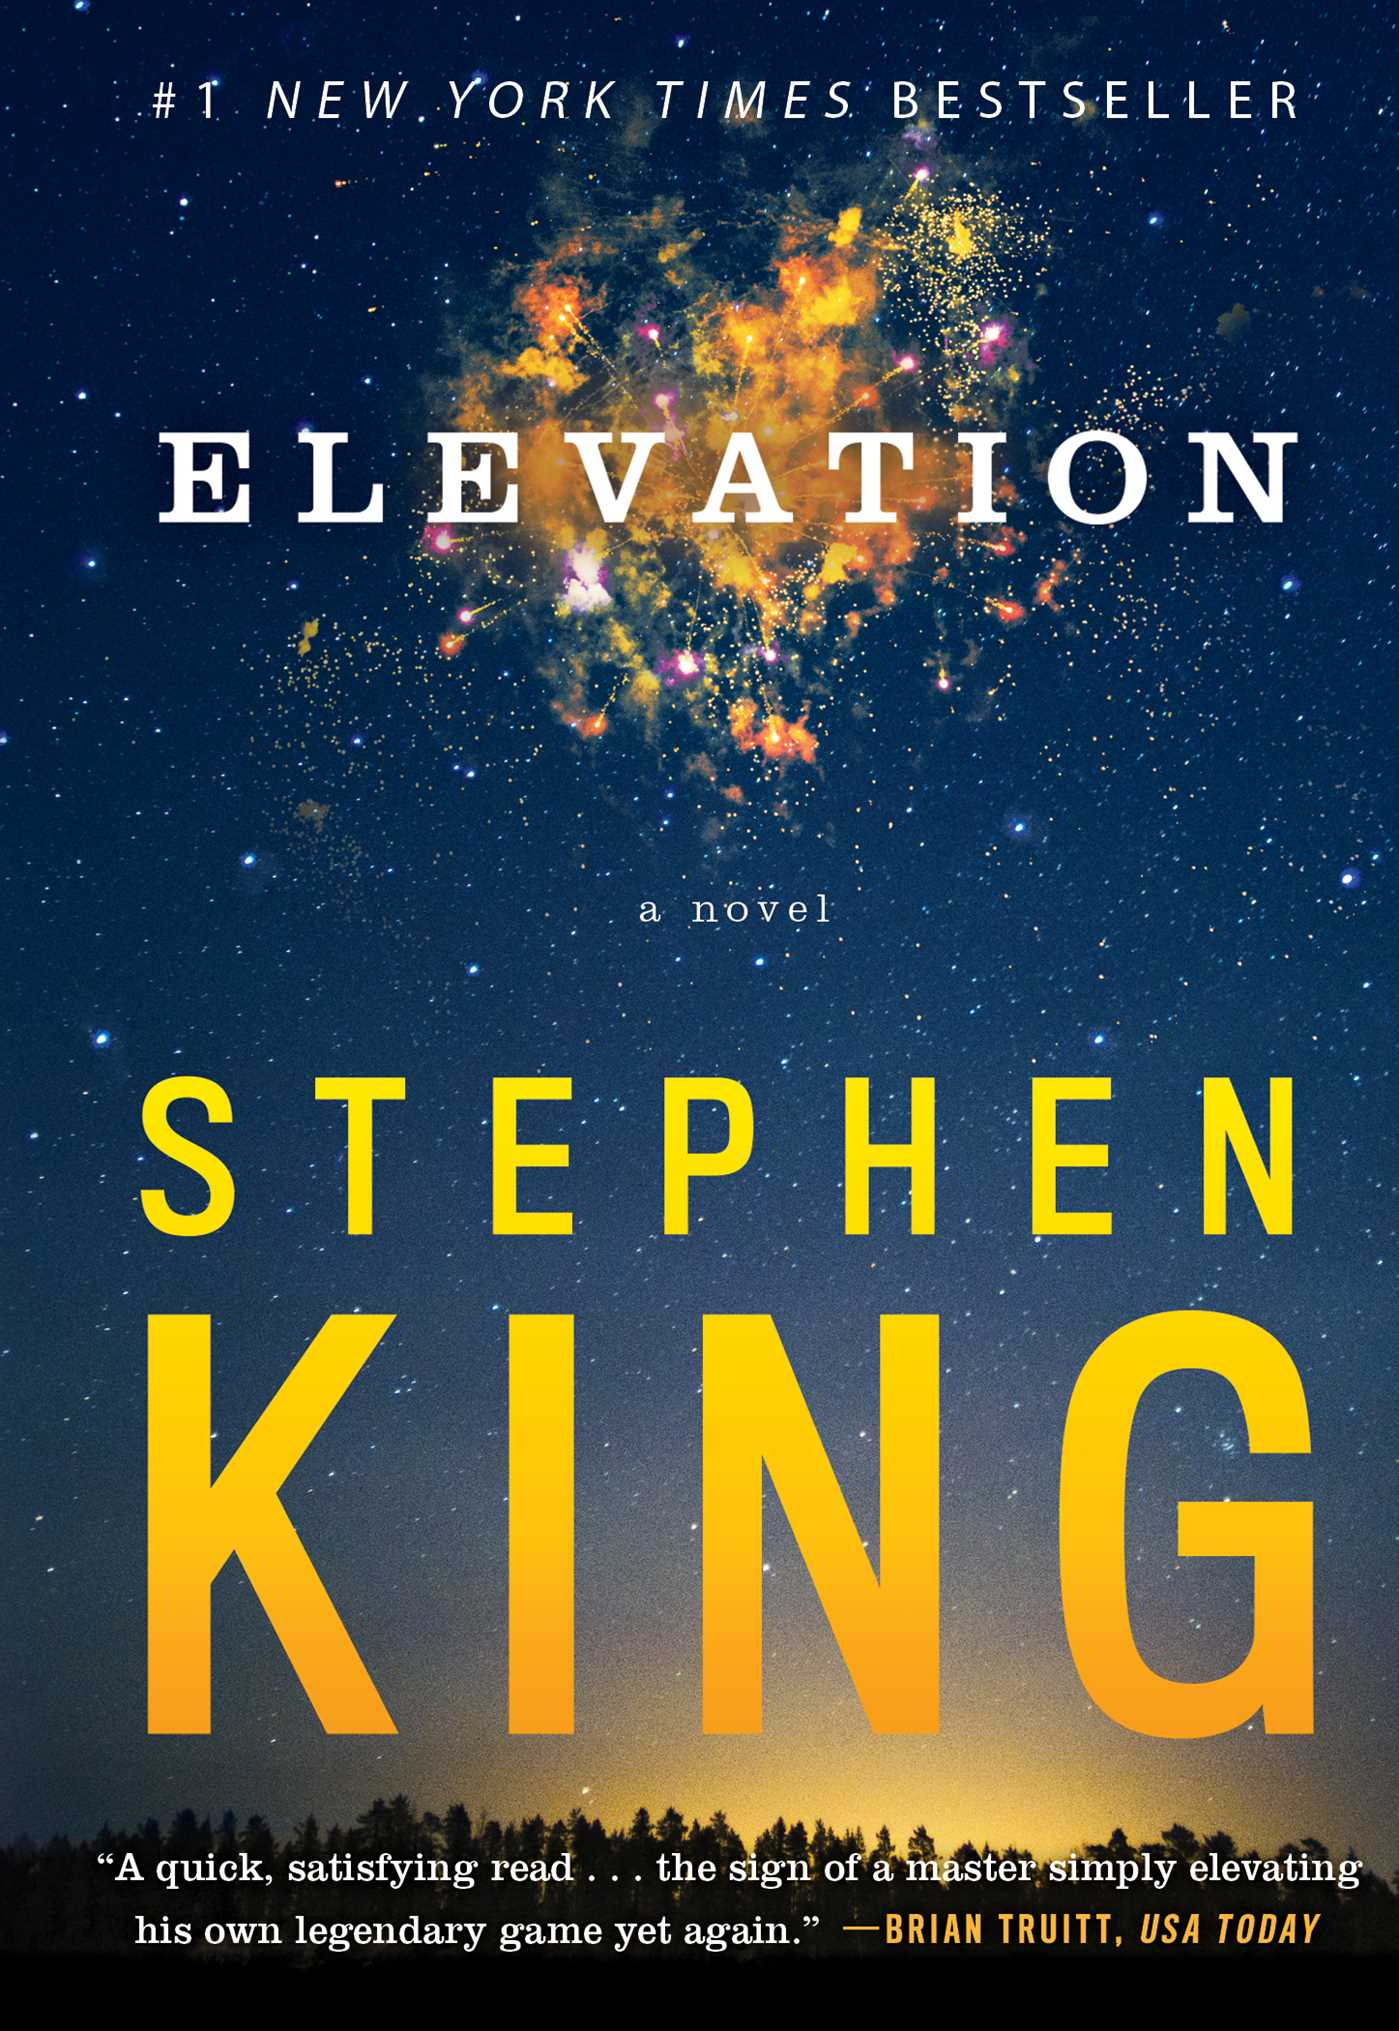 5. Stephen King - Elevation